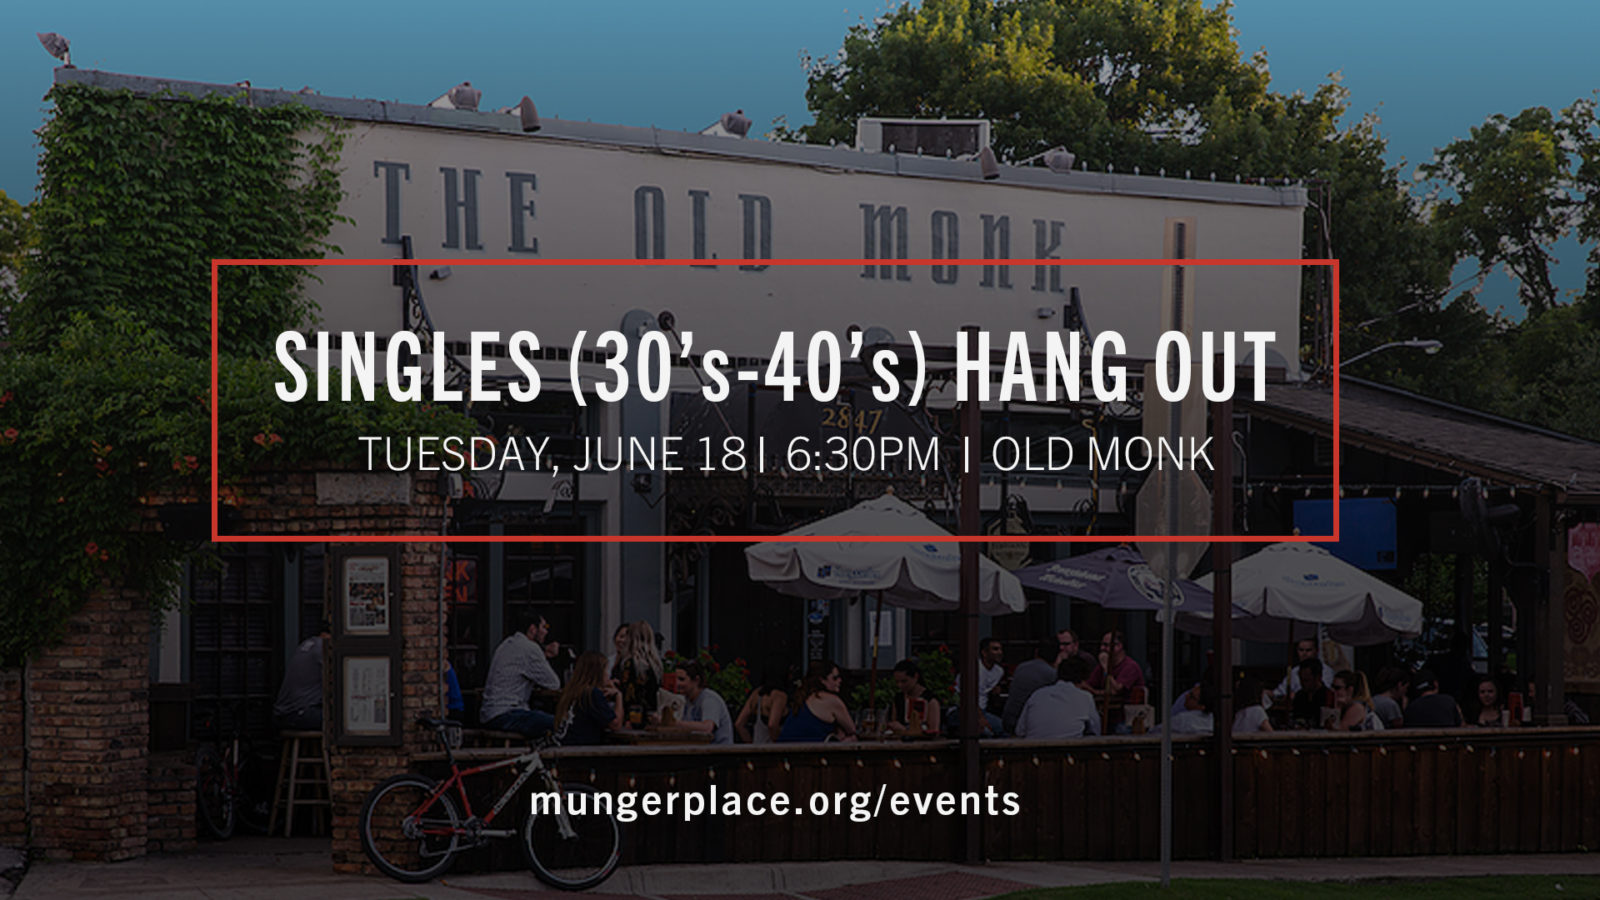 Singles (30's-40's) Hang Out